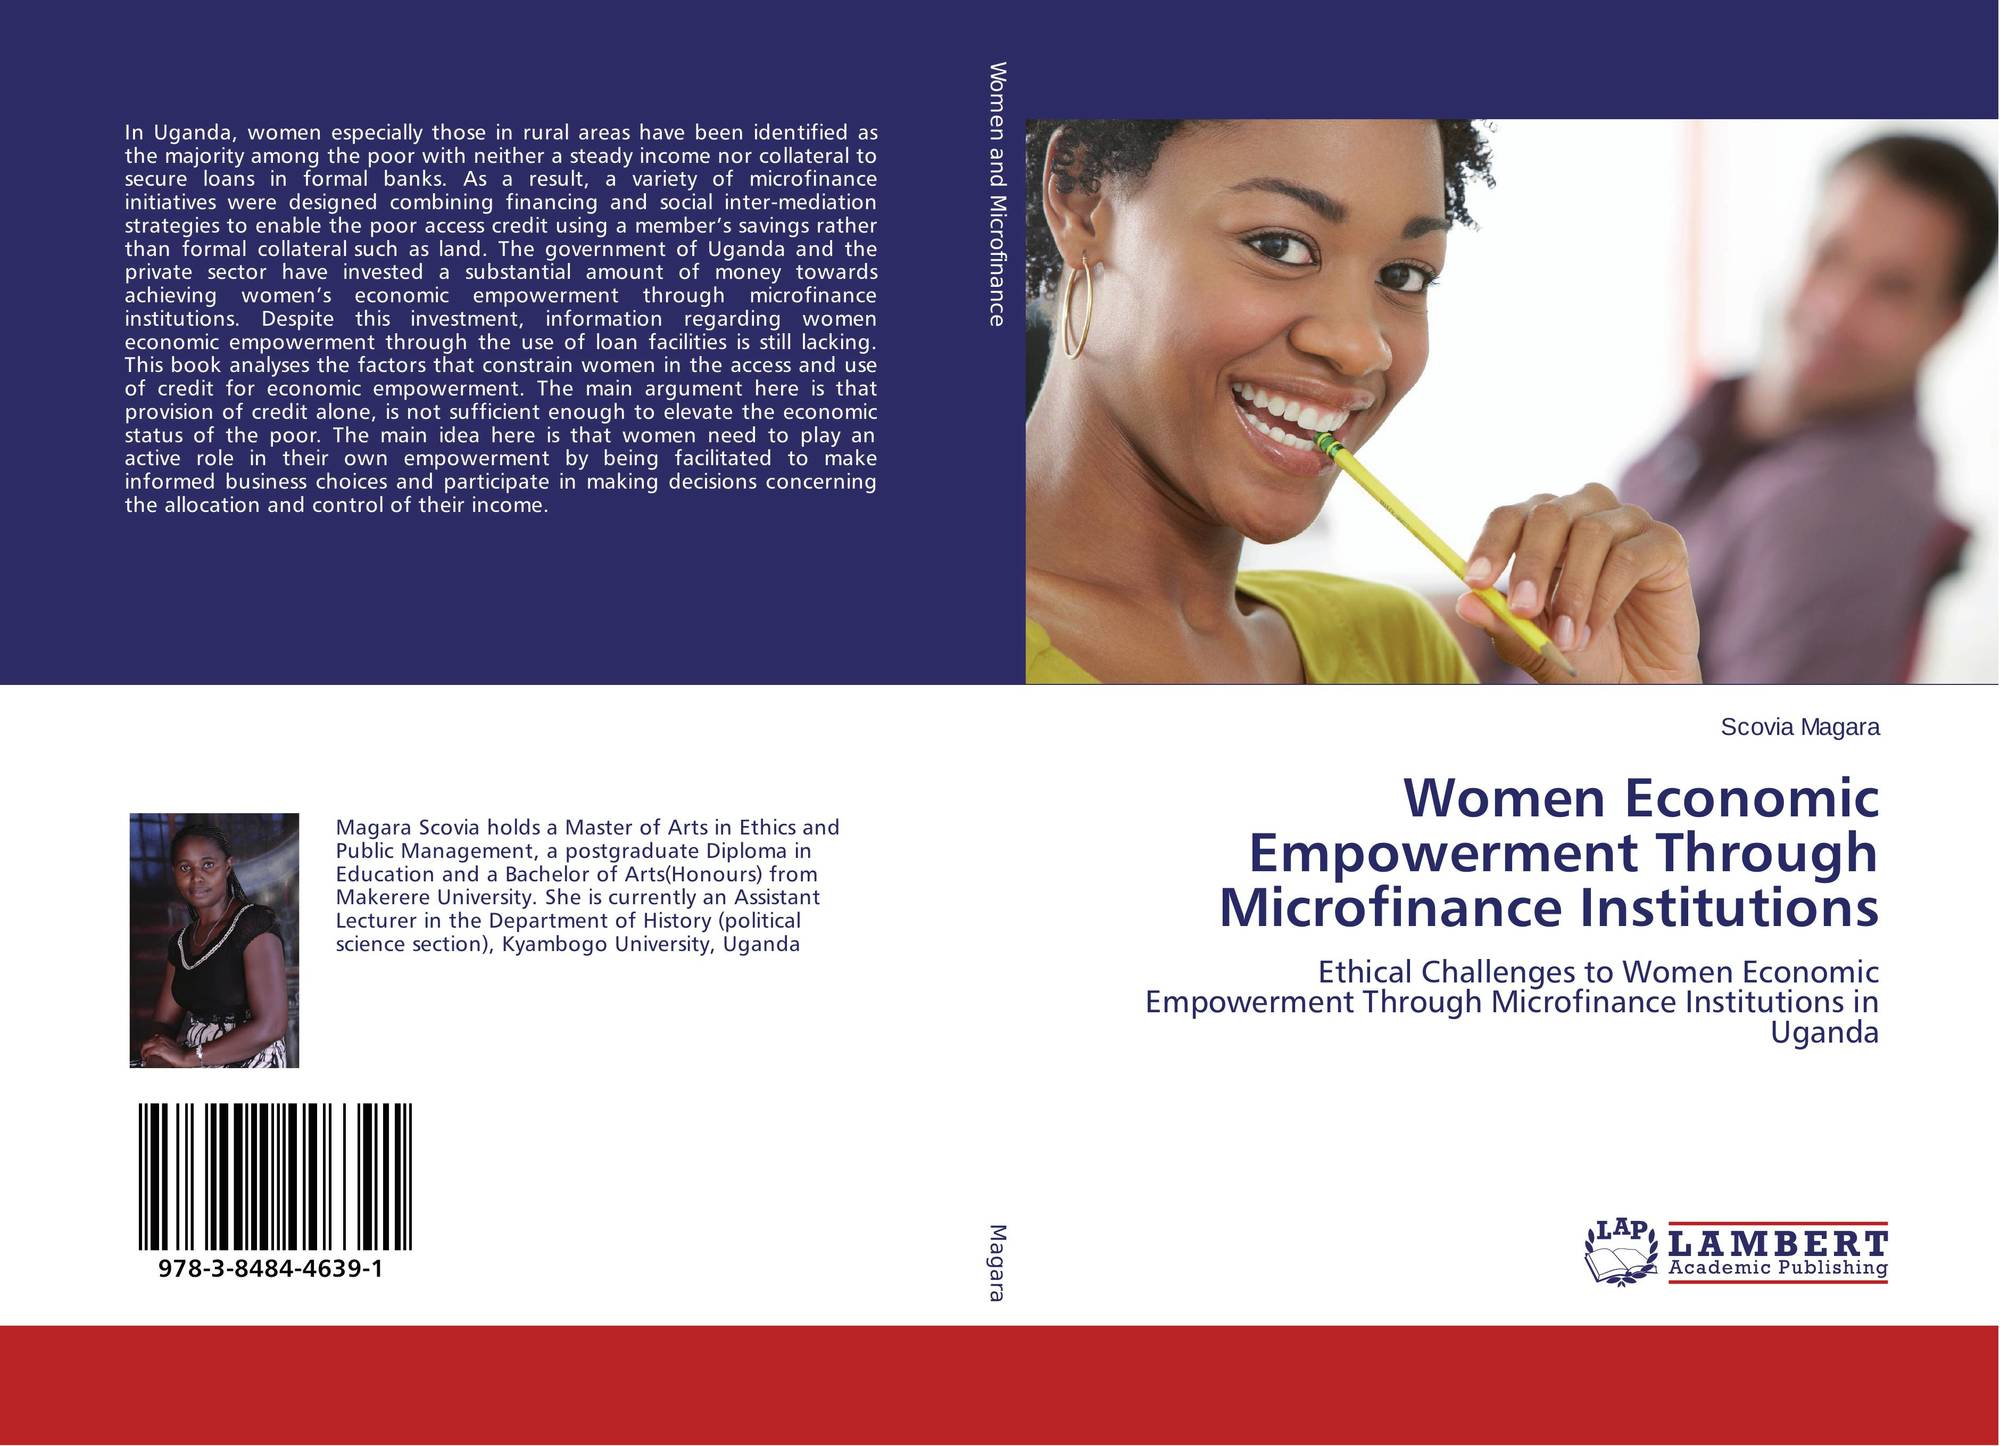 evaluation of microfinance and women empowerment The promise of microfinance and women's empowerment  of randomized  evaluations, have driven many novelties in the microfinance space, including a.